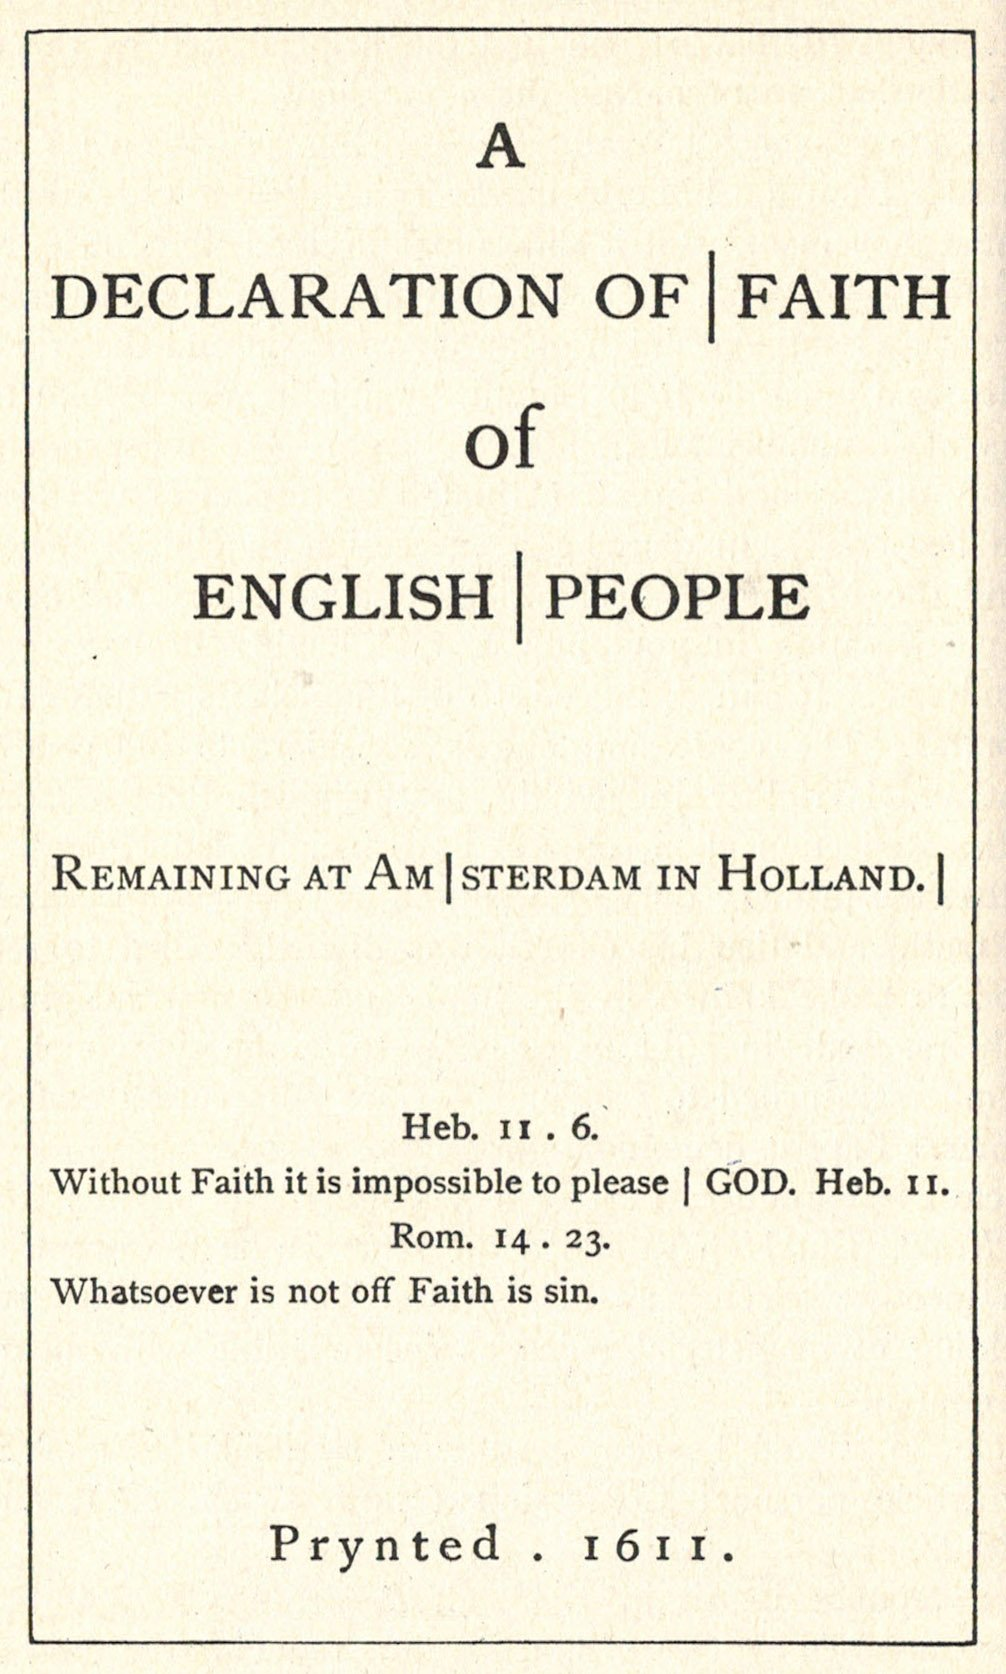 """Cover of the """"A Declaration of Faith of English People remaining at Amsterdam in Holland"""", dated 1611"""